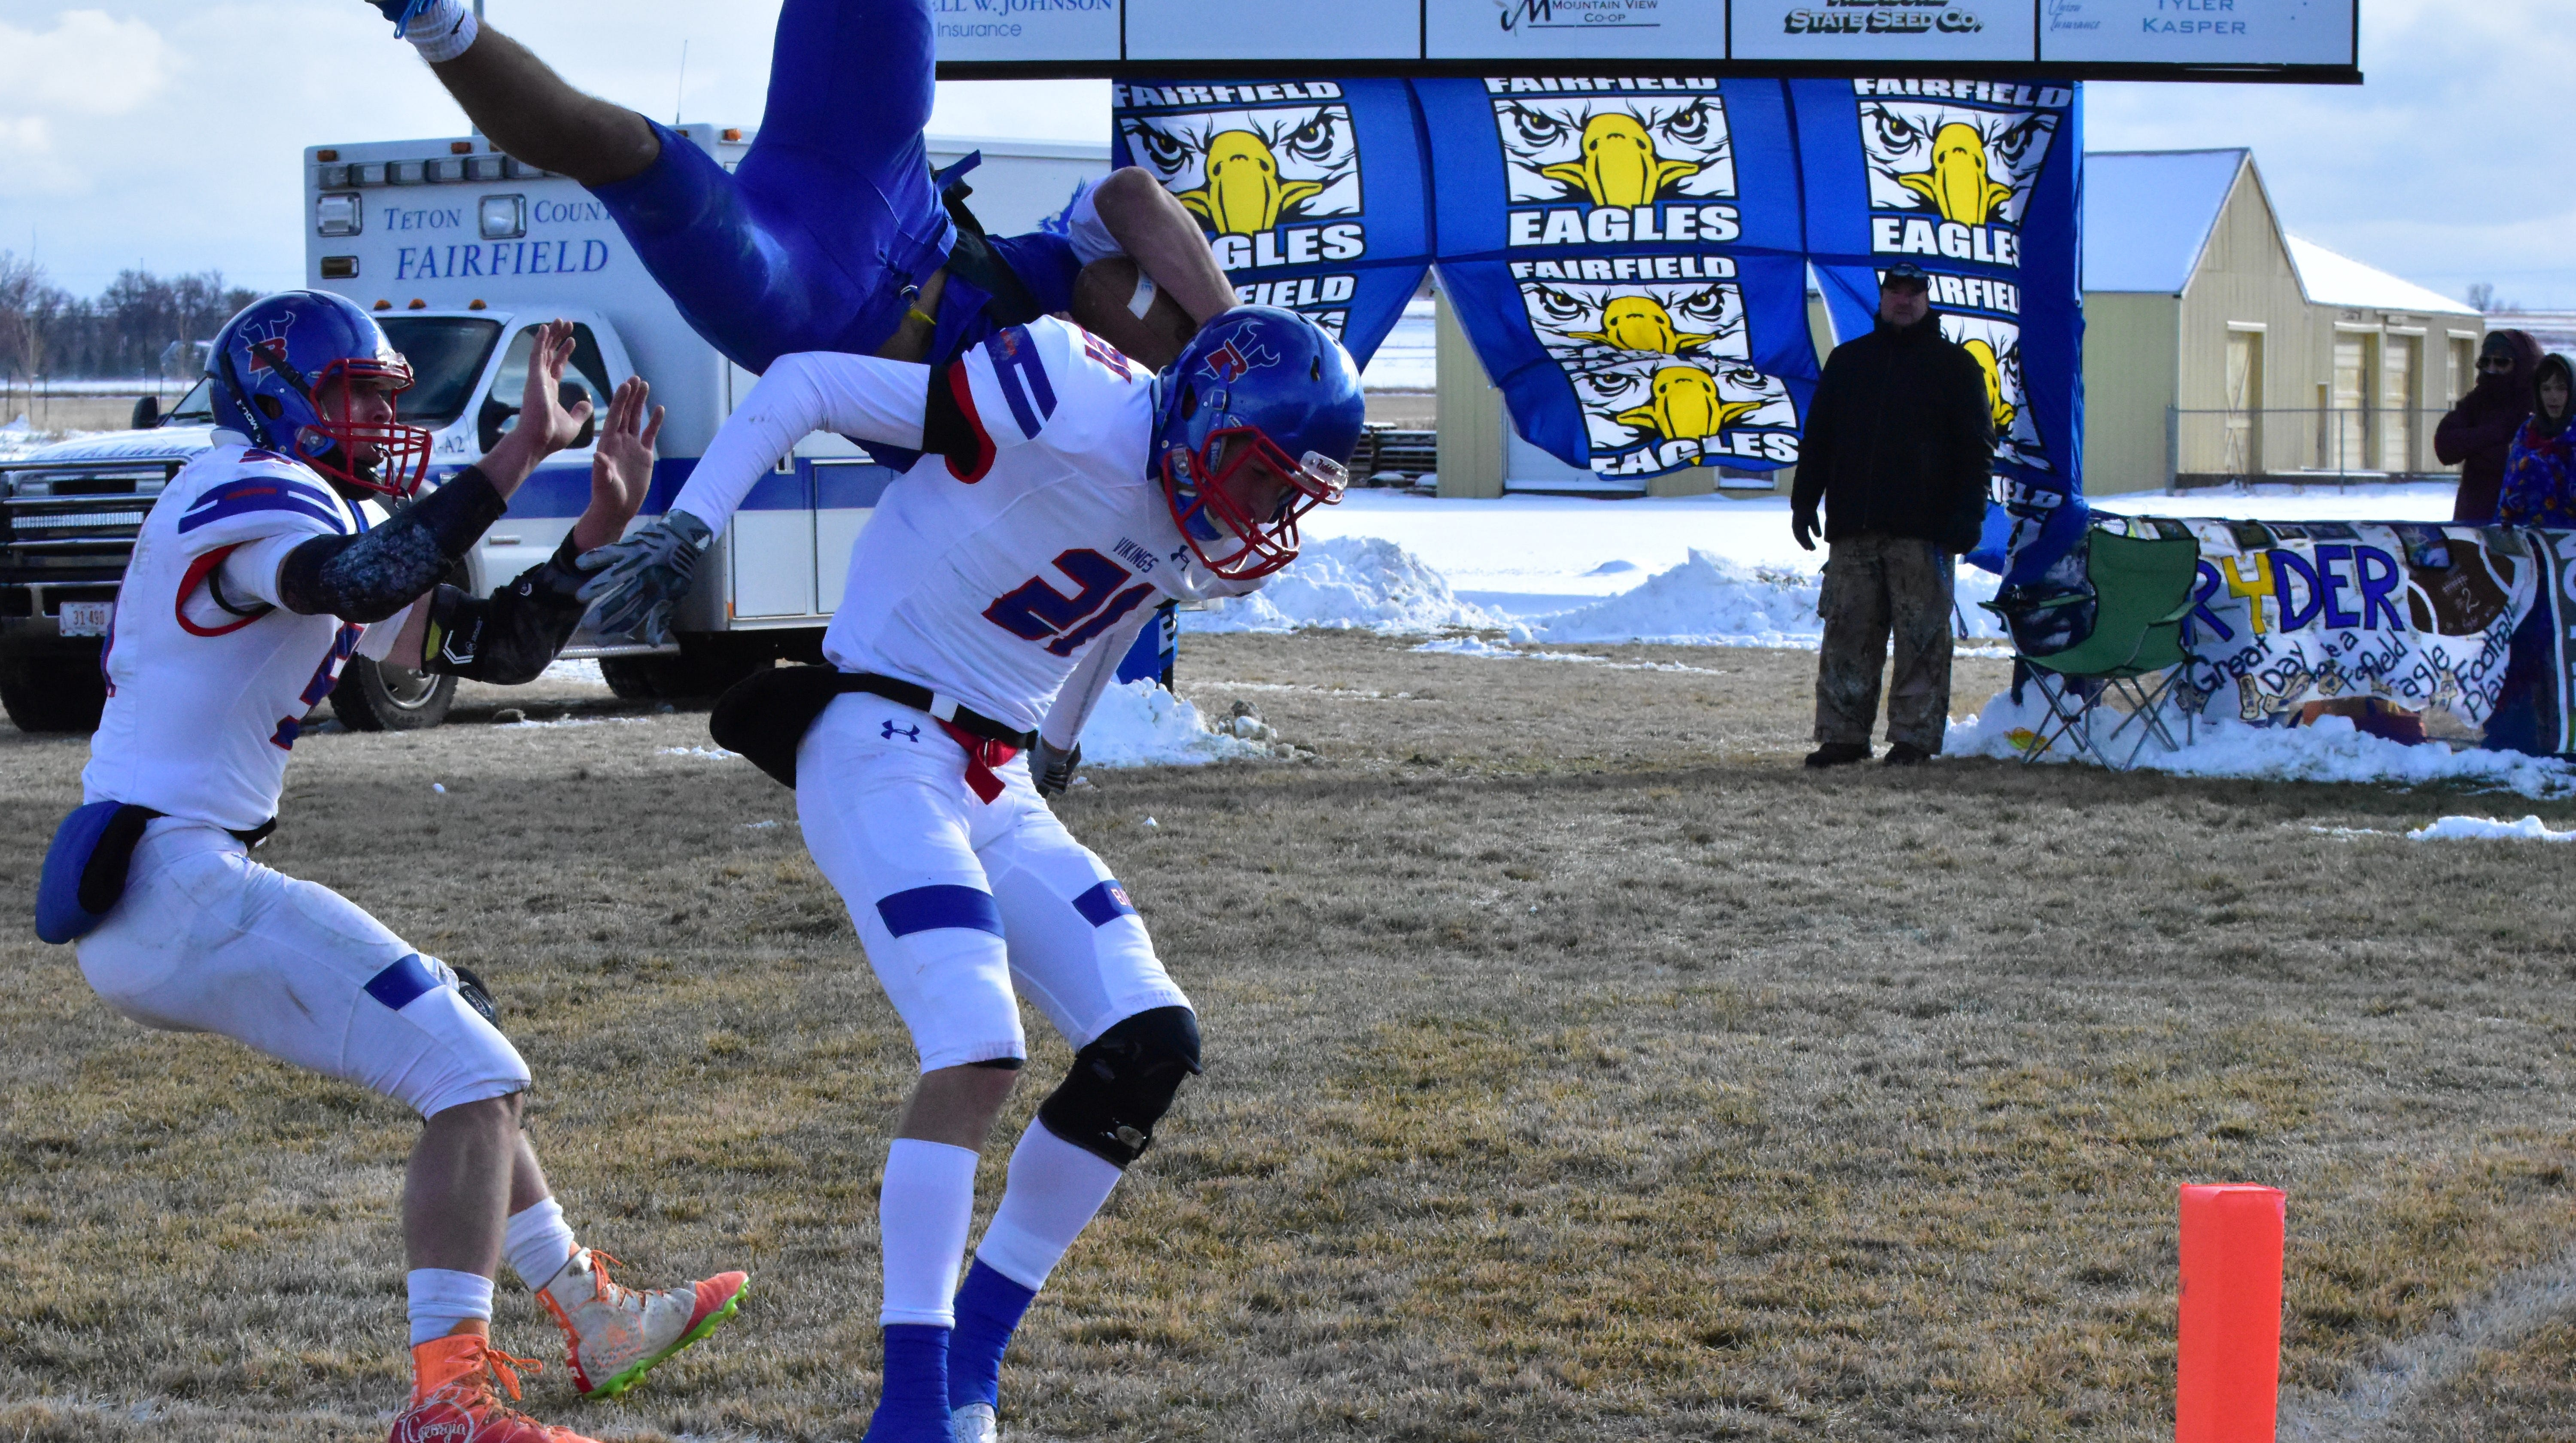 The Fairfield Eagles hosted the Bigfork Vikings in a State Class B semifinal football game Saturday at Jacob Schilling Field.